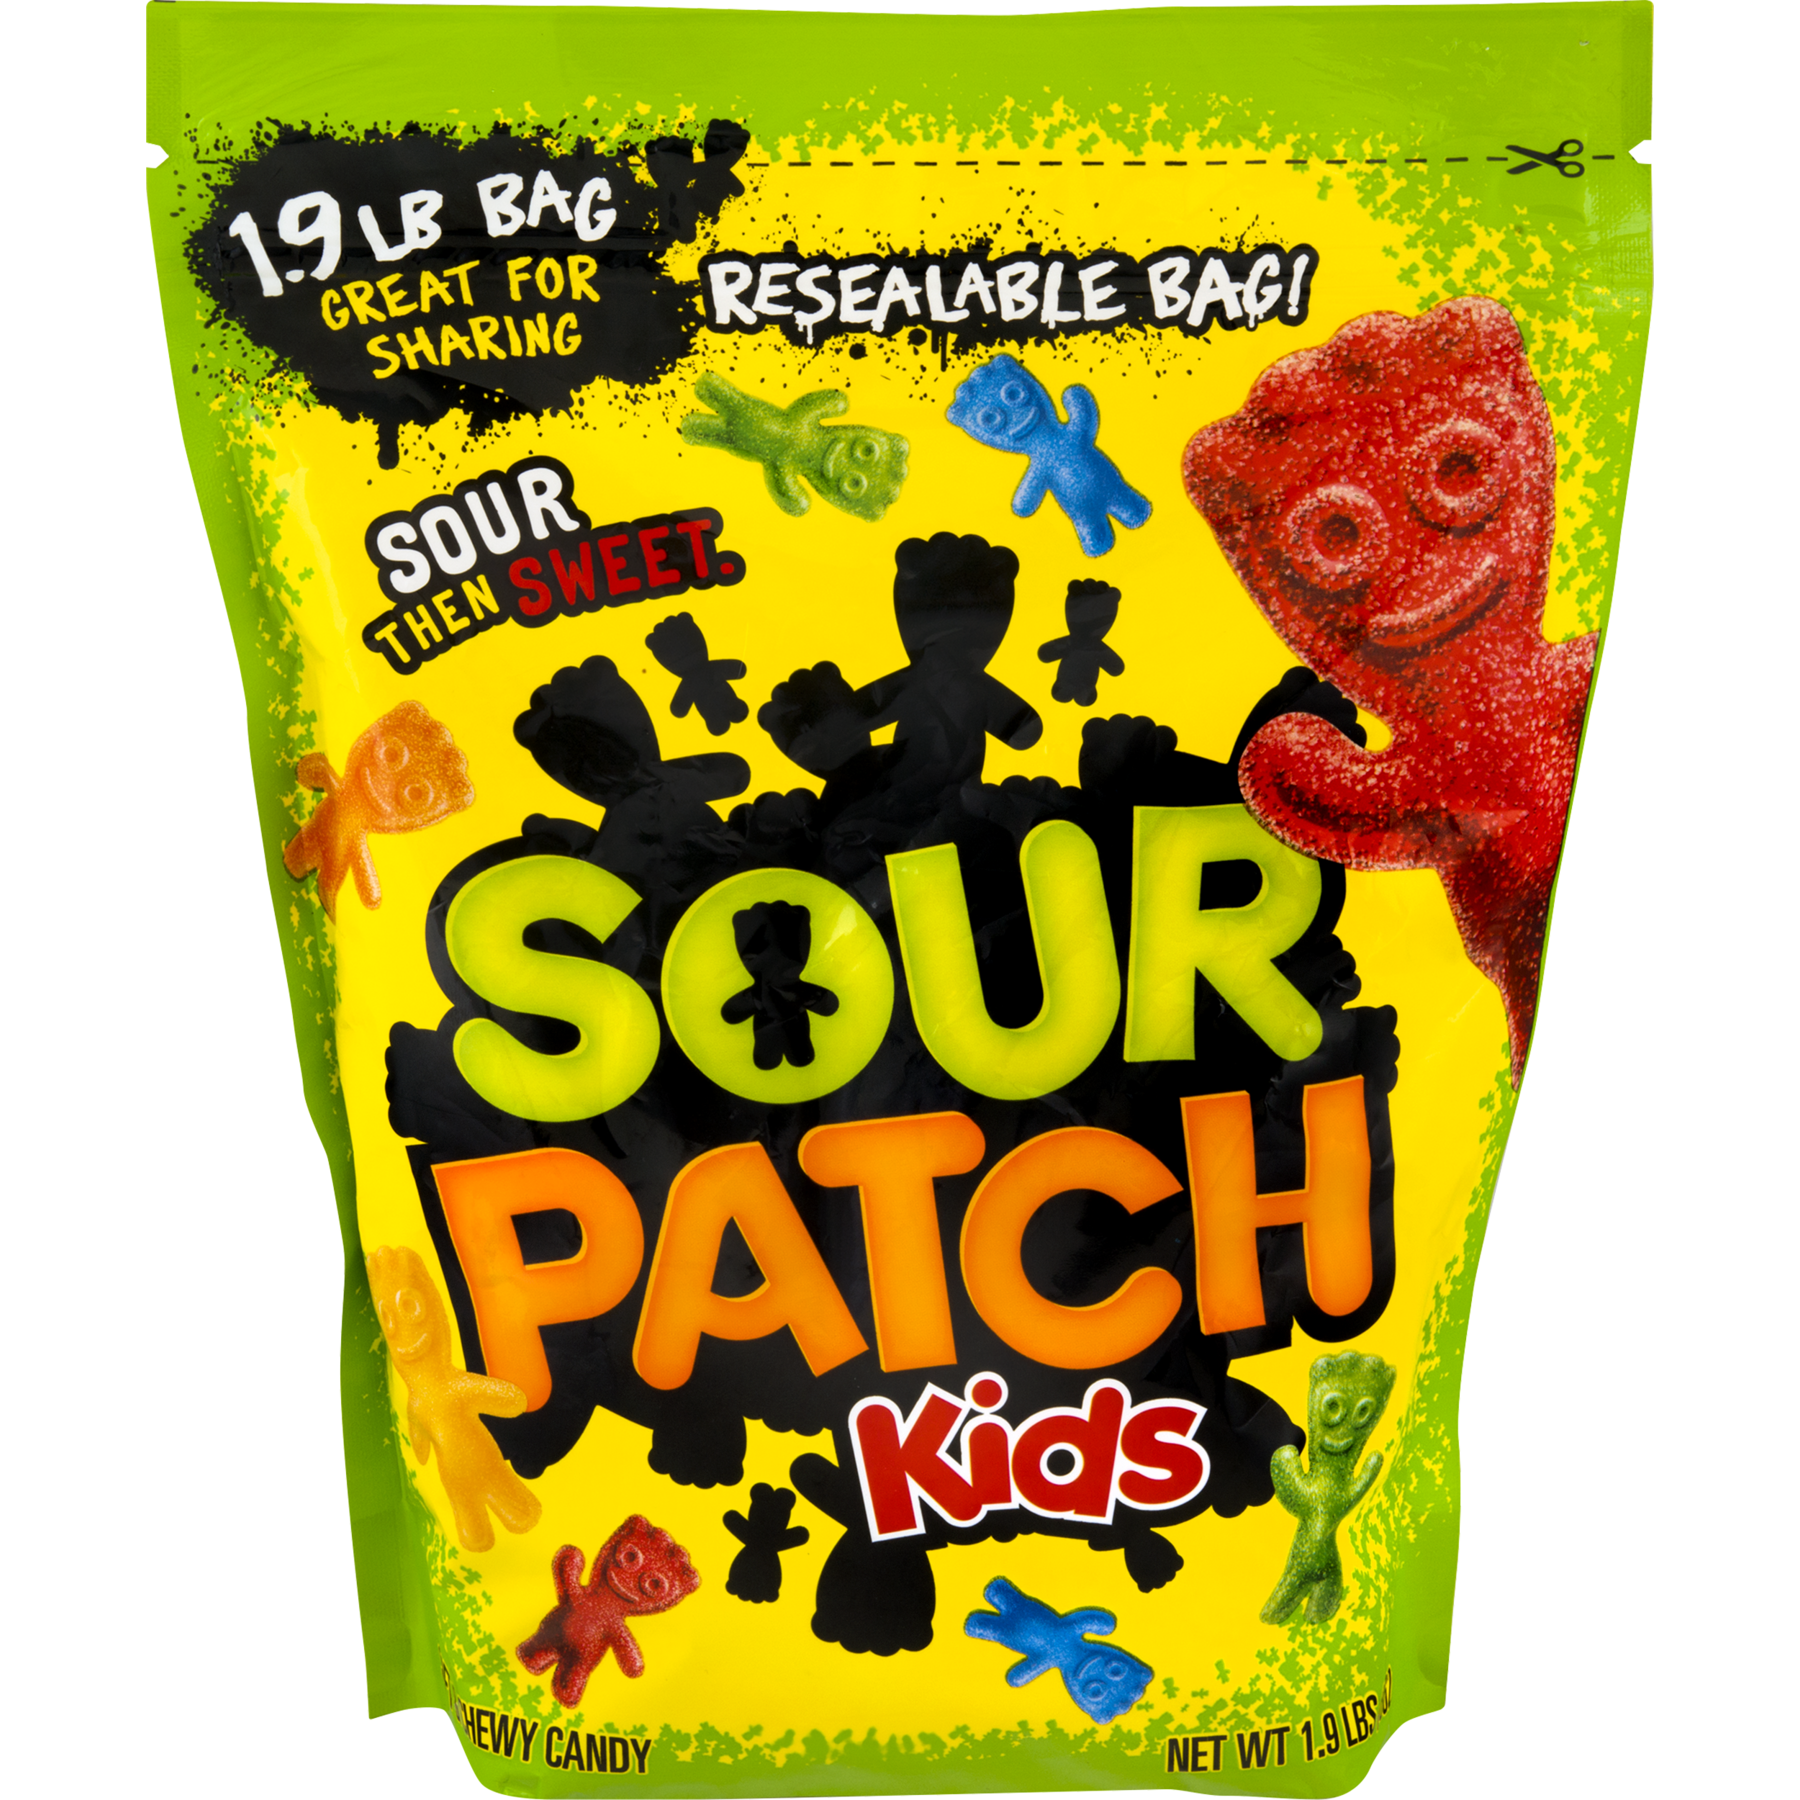 Sour Patch Kids, Soft and Chewy Candy, 1.9 Lb